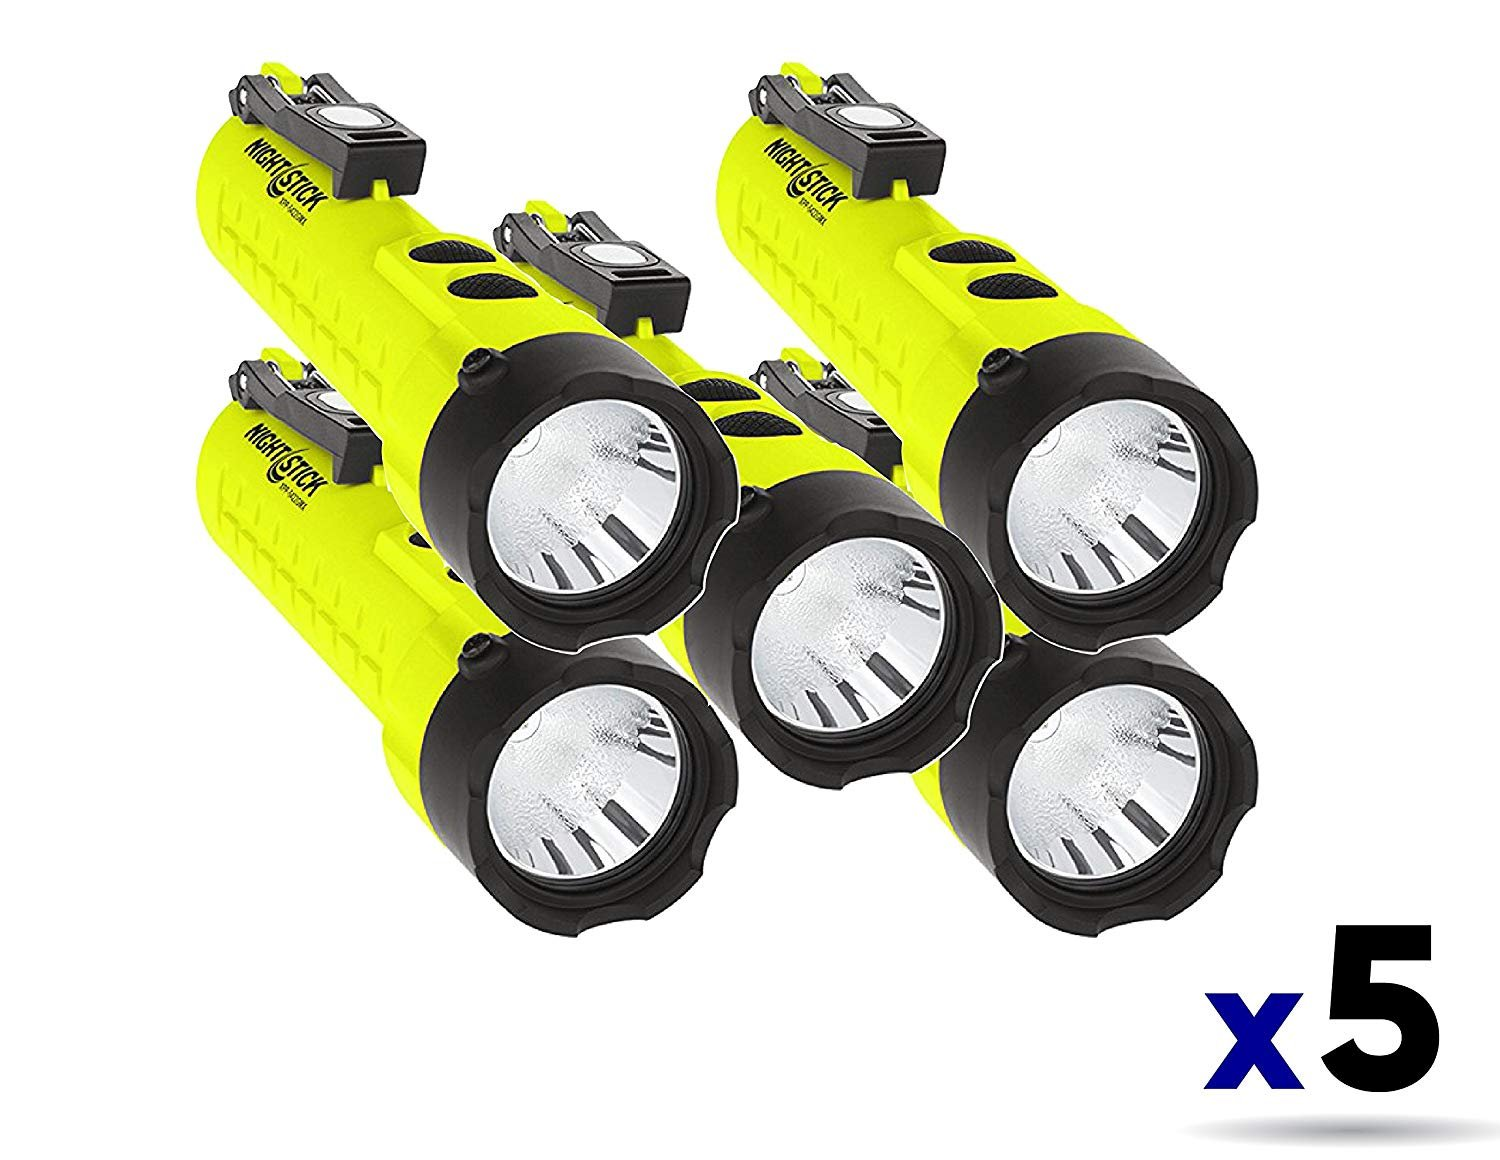 Nightstick XPP-5422GMX X-Series Intrinsically Safe Dual-Light Flashlight with Dual Magnets Green/Black (5 Pack)